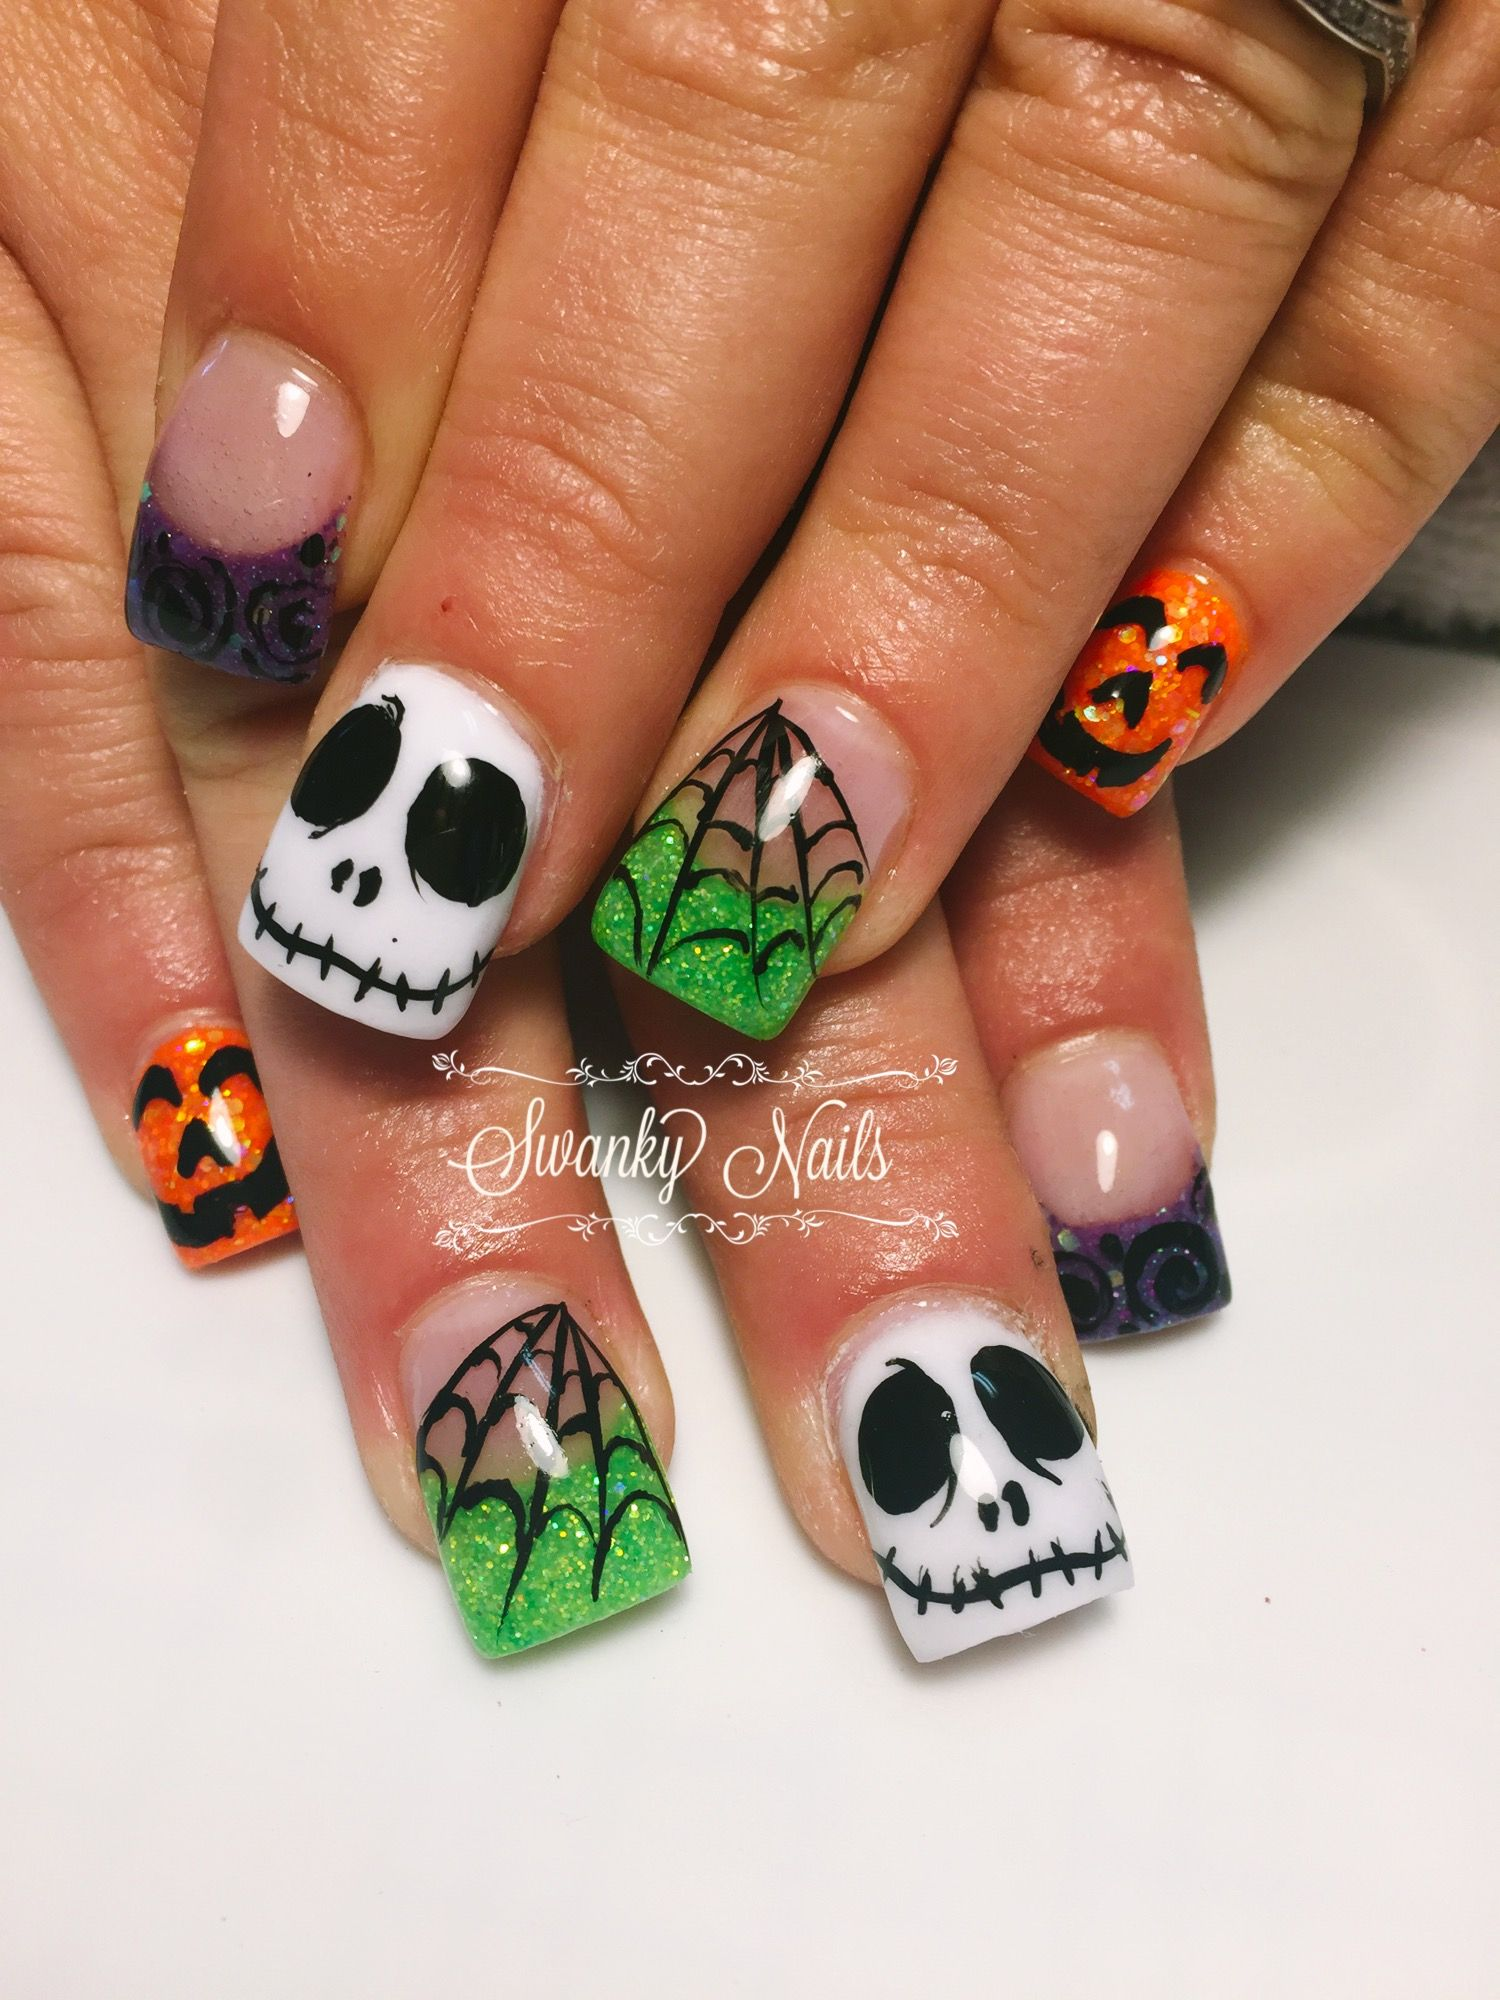 Nightmare Before Christmas Nails Halloweennails Swnkynails Swankynailsnwa Nightmare Before Christmas Nails Halloween Acrylic Nails Halloween Nail Designs